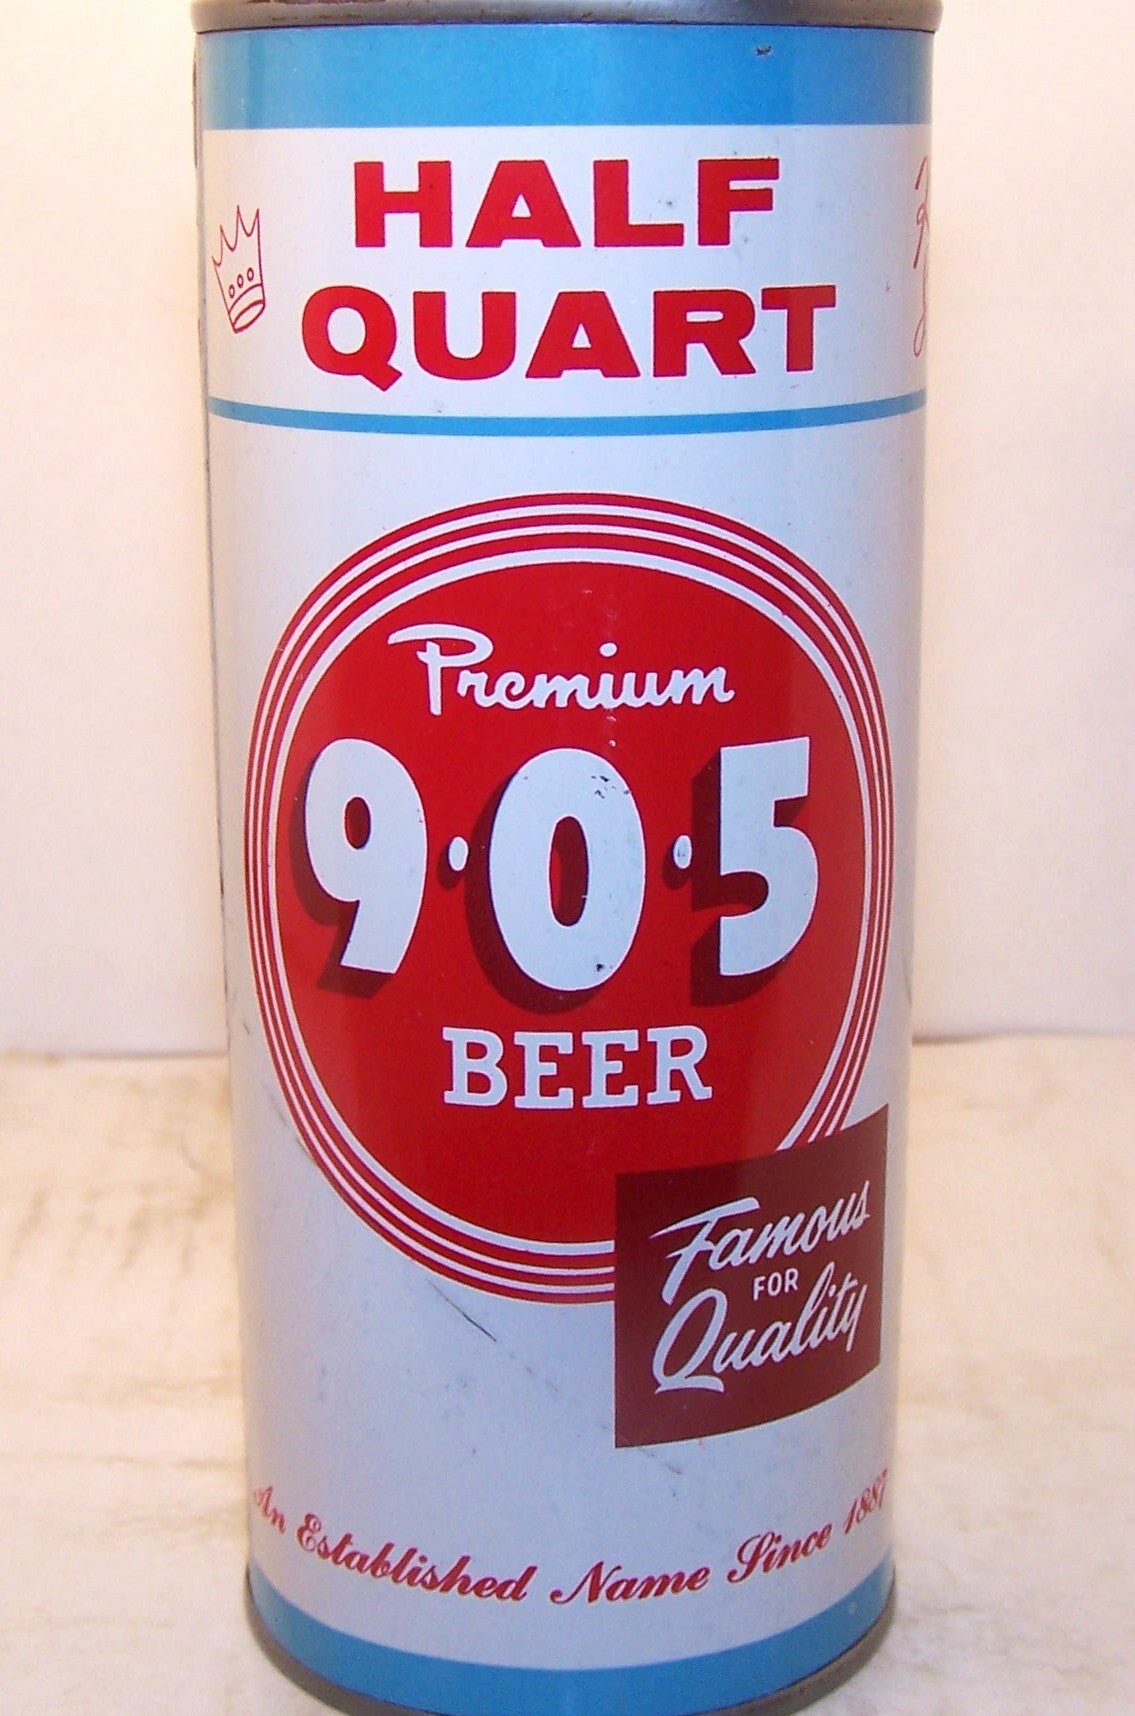 9*0*5 Premium Beer, USBC 233-2, Grade 1/1+ Sold on 2/11/15